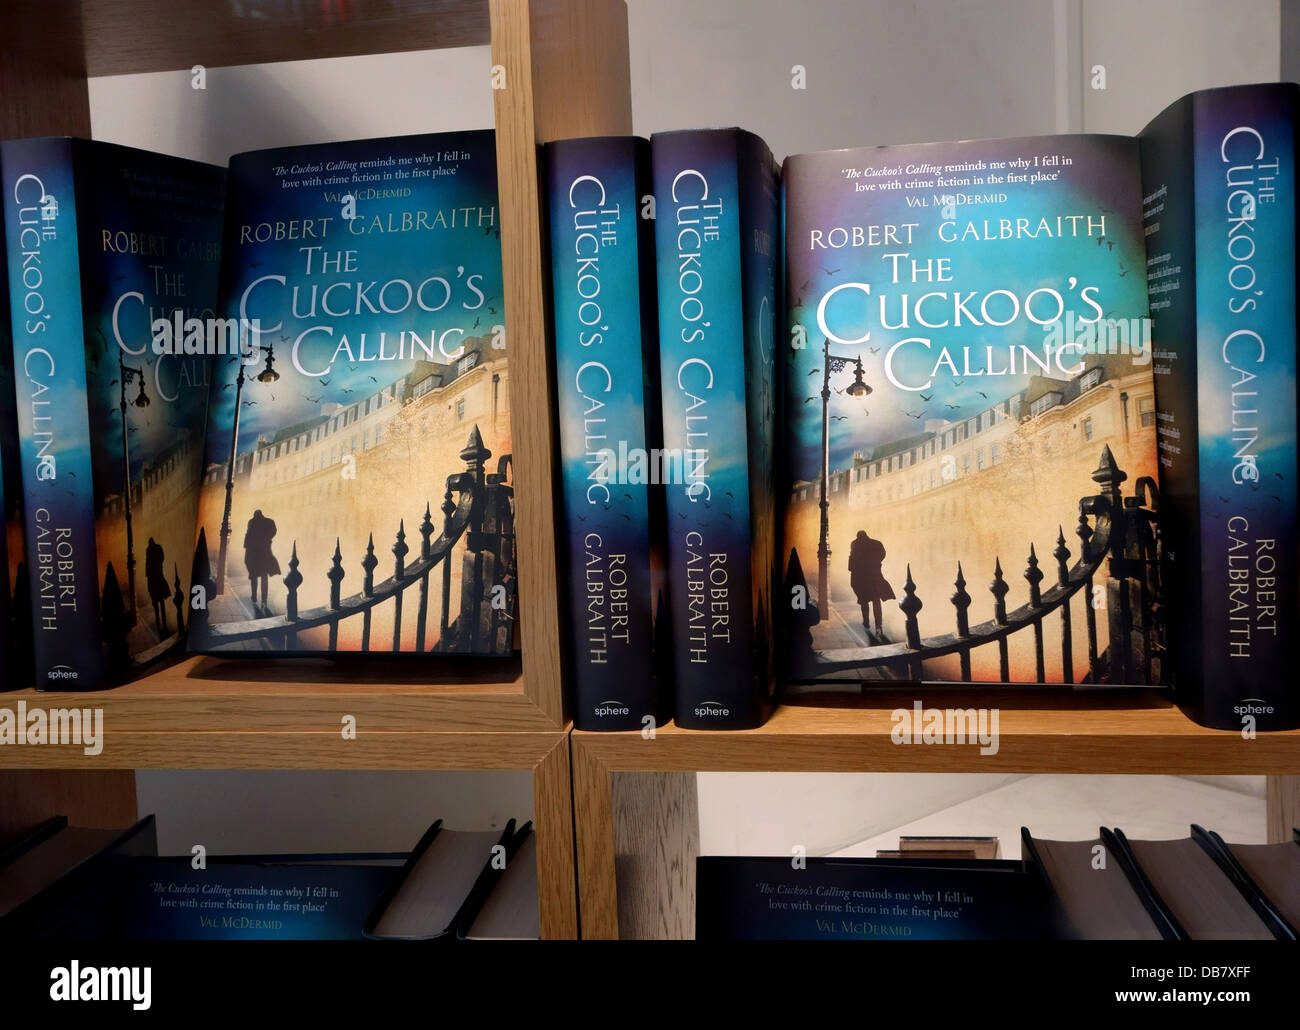 J K Rowling revealed as author of The Cuckoo's Calling by Robert Galbraith, London - Stock Image